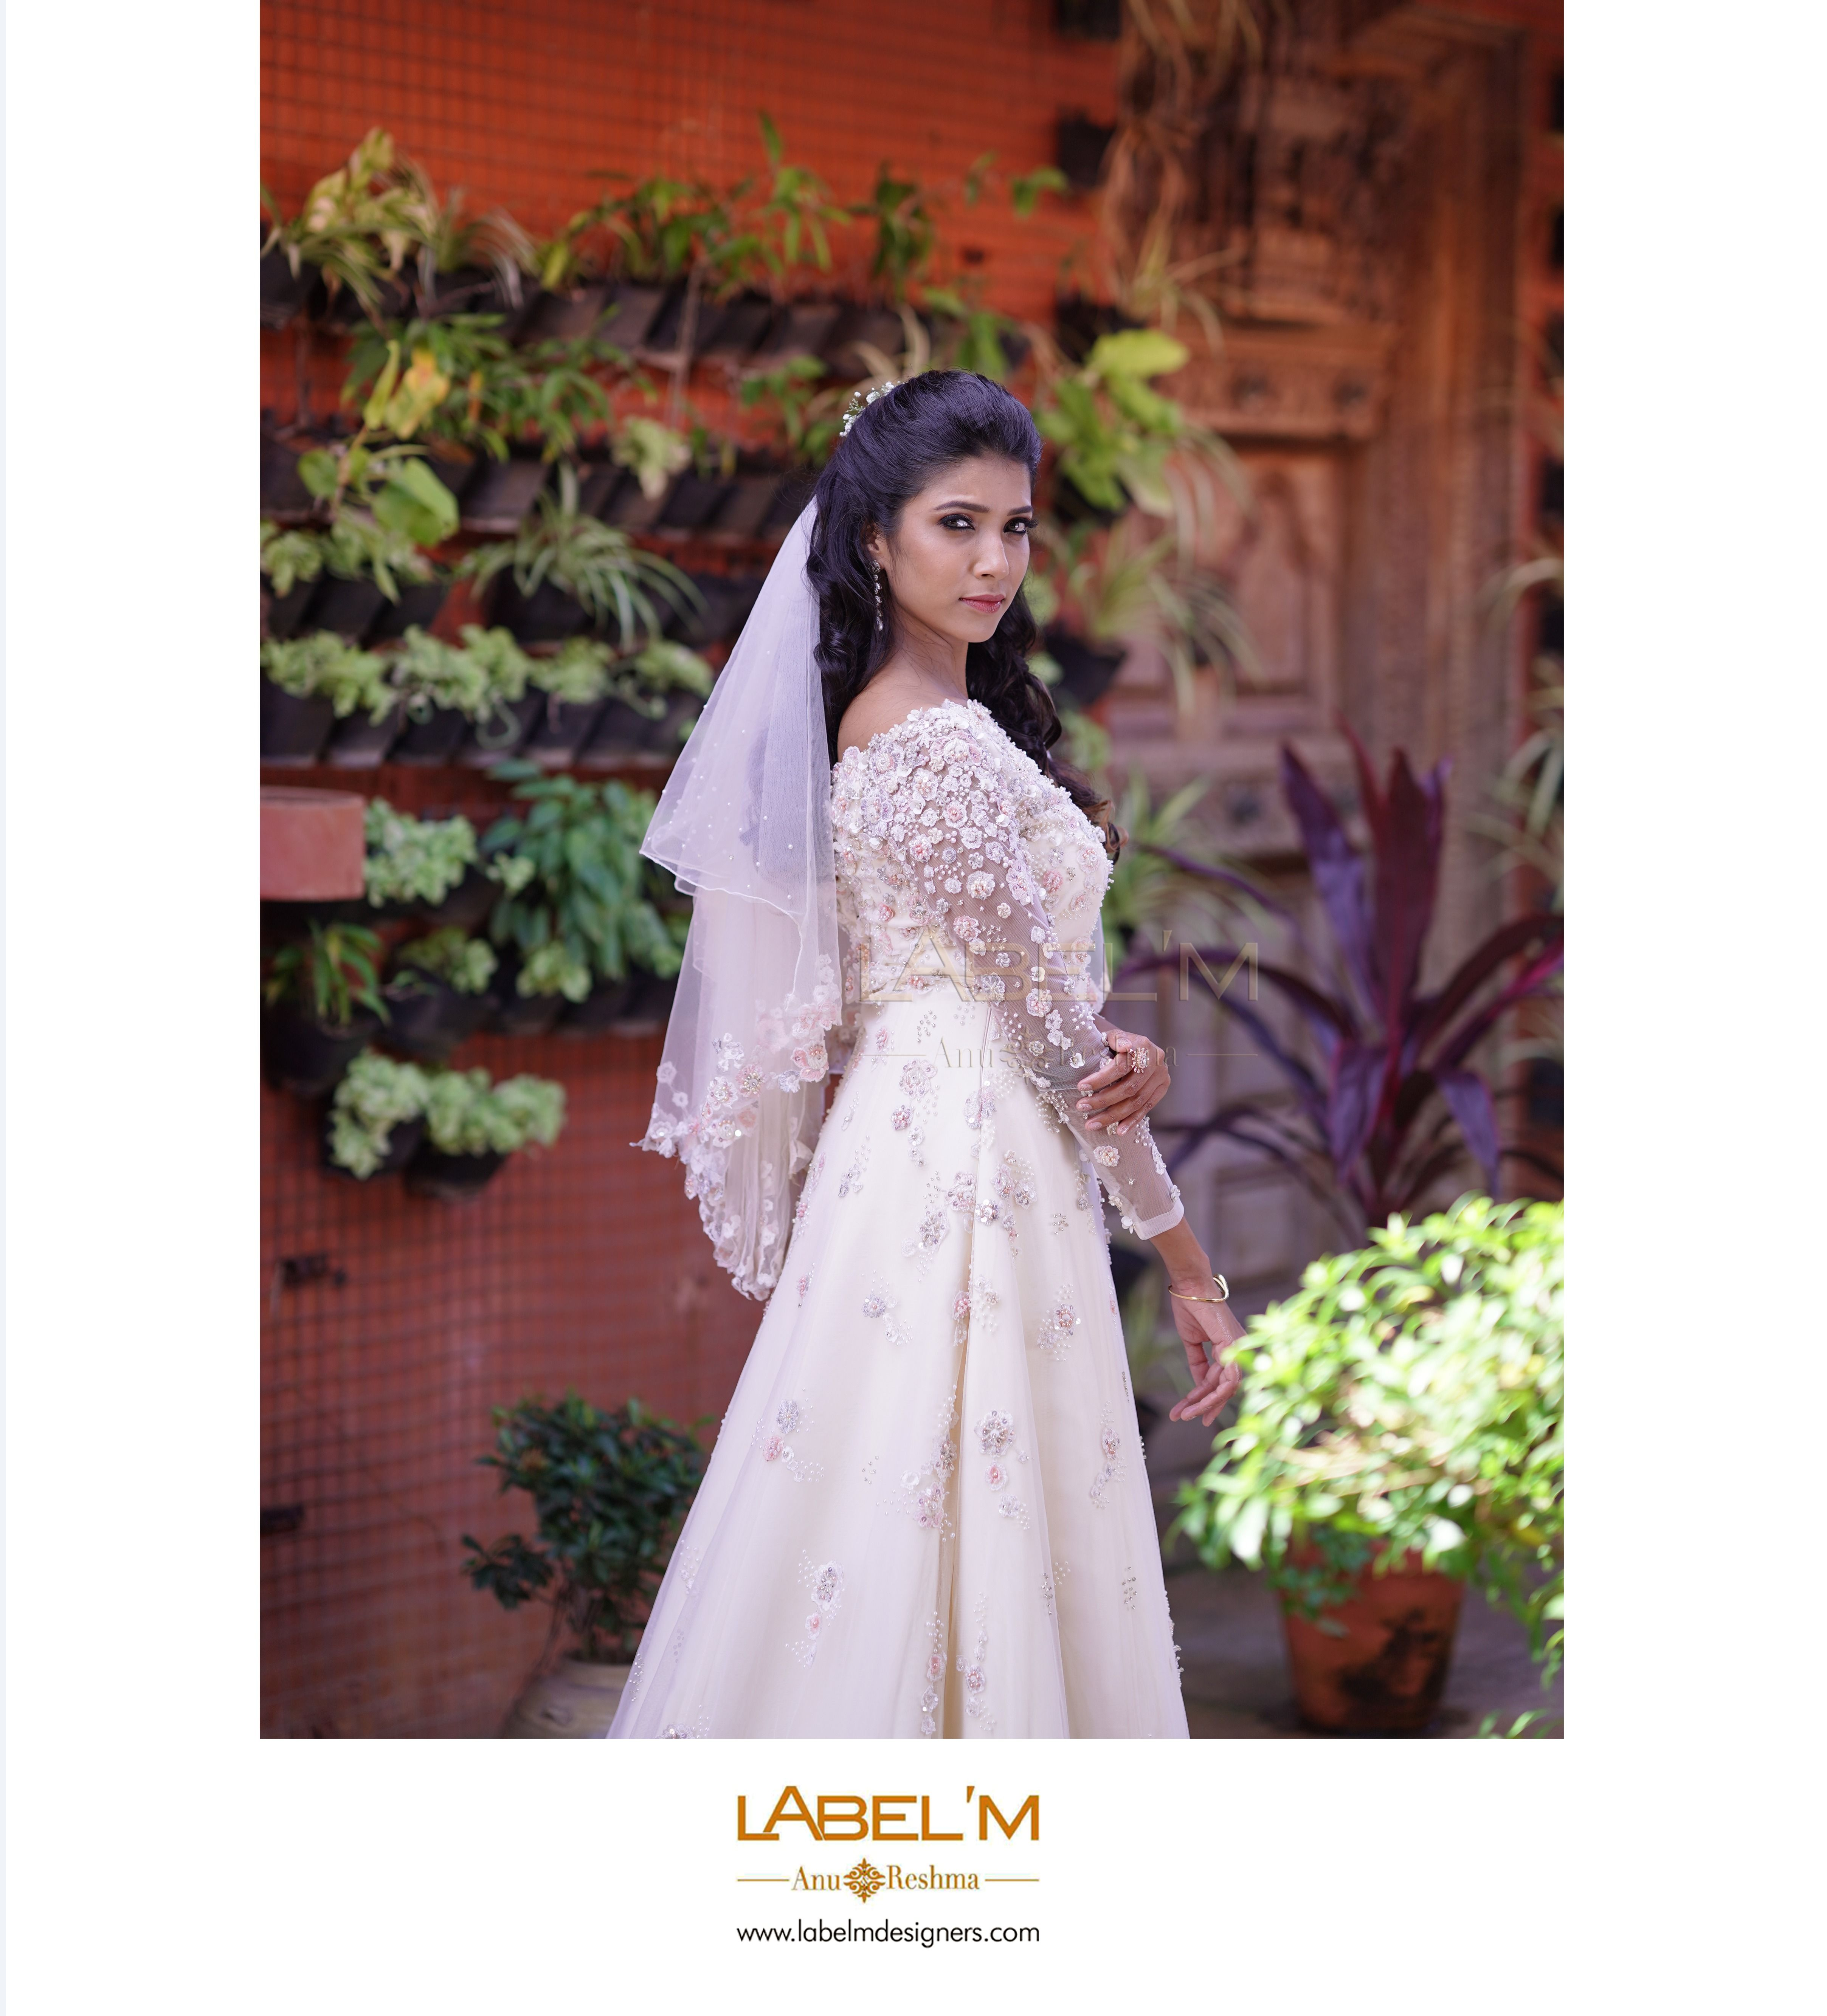 Here S We Presenting You The Exquisite Bridal Looks For The Next Season Book Your Bridal Appointments Now Bridal Looks Wedding Dress Shopping Wedding Styles